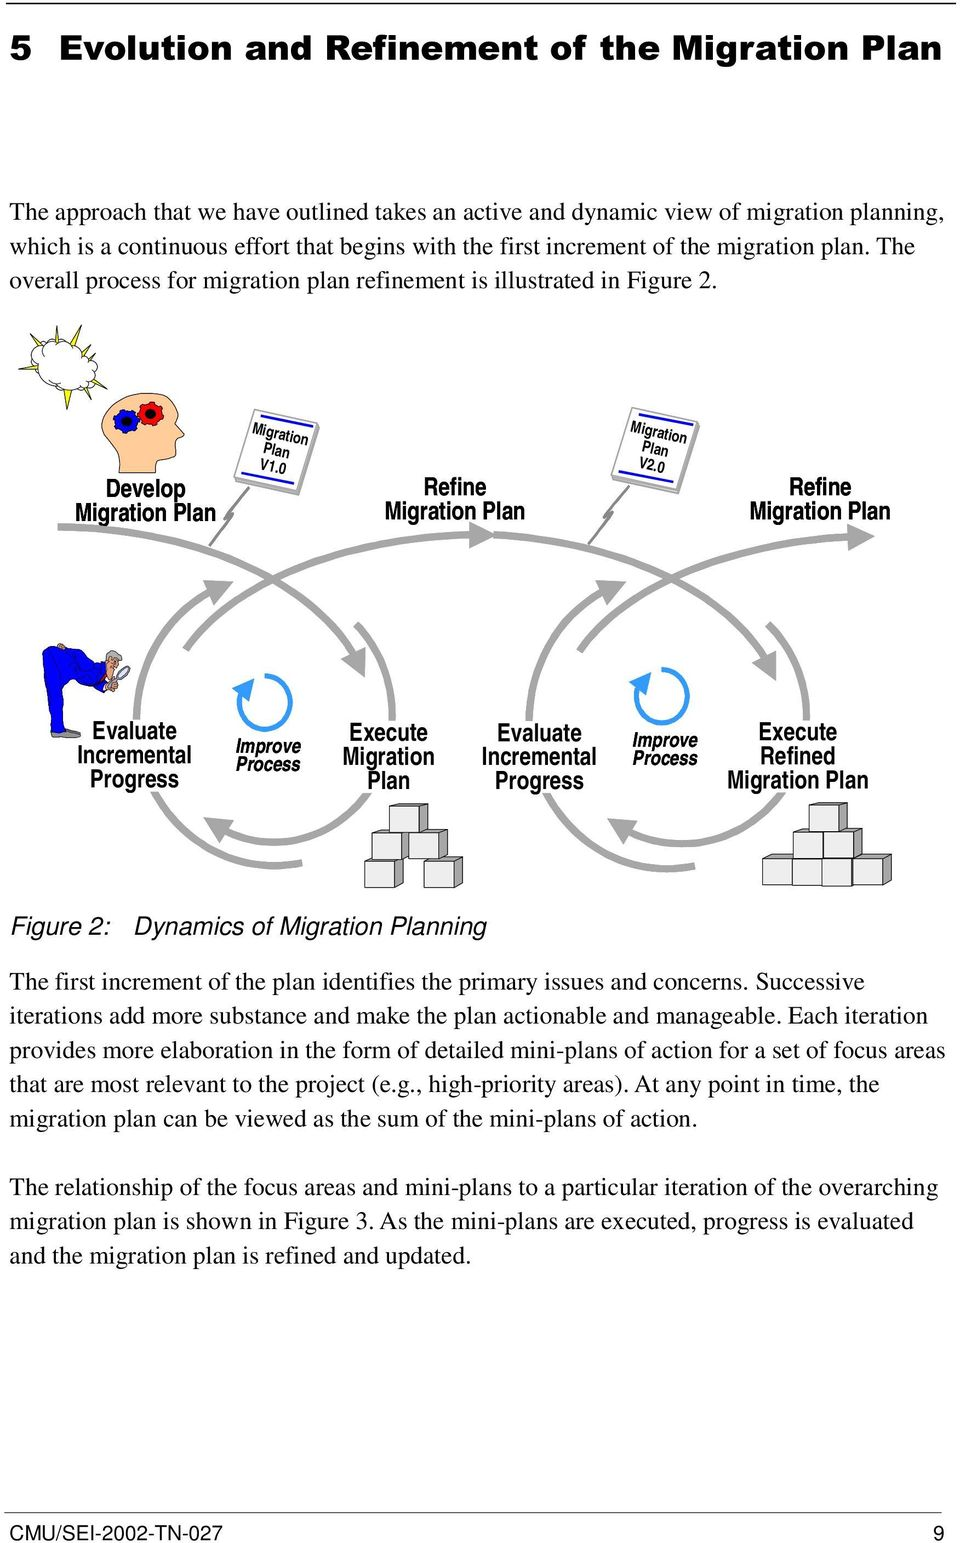 0 Refine Migration Plan Evaluate Incremental Progress Improve Process Execute Migration Plan Evaluate Incremental Progress Improve Process Execute Refined Migration Plan Figure 2: Dynamics of